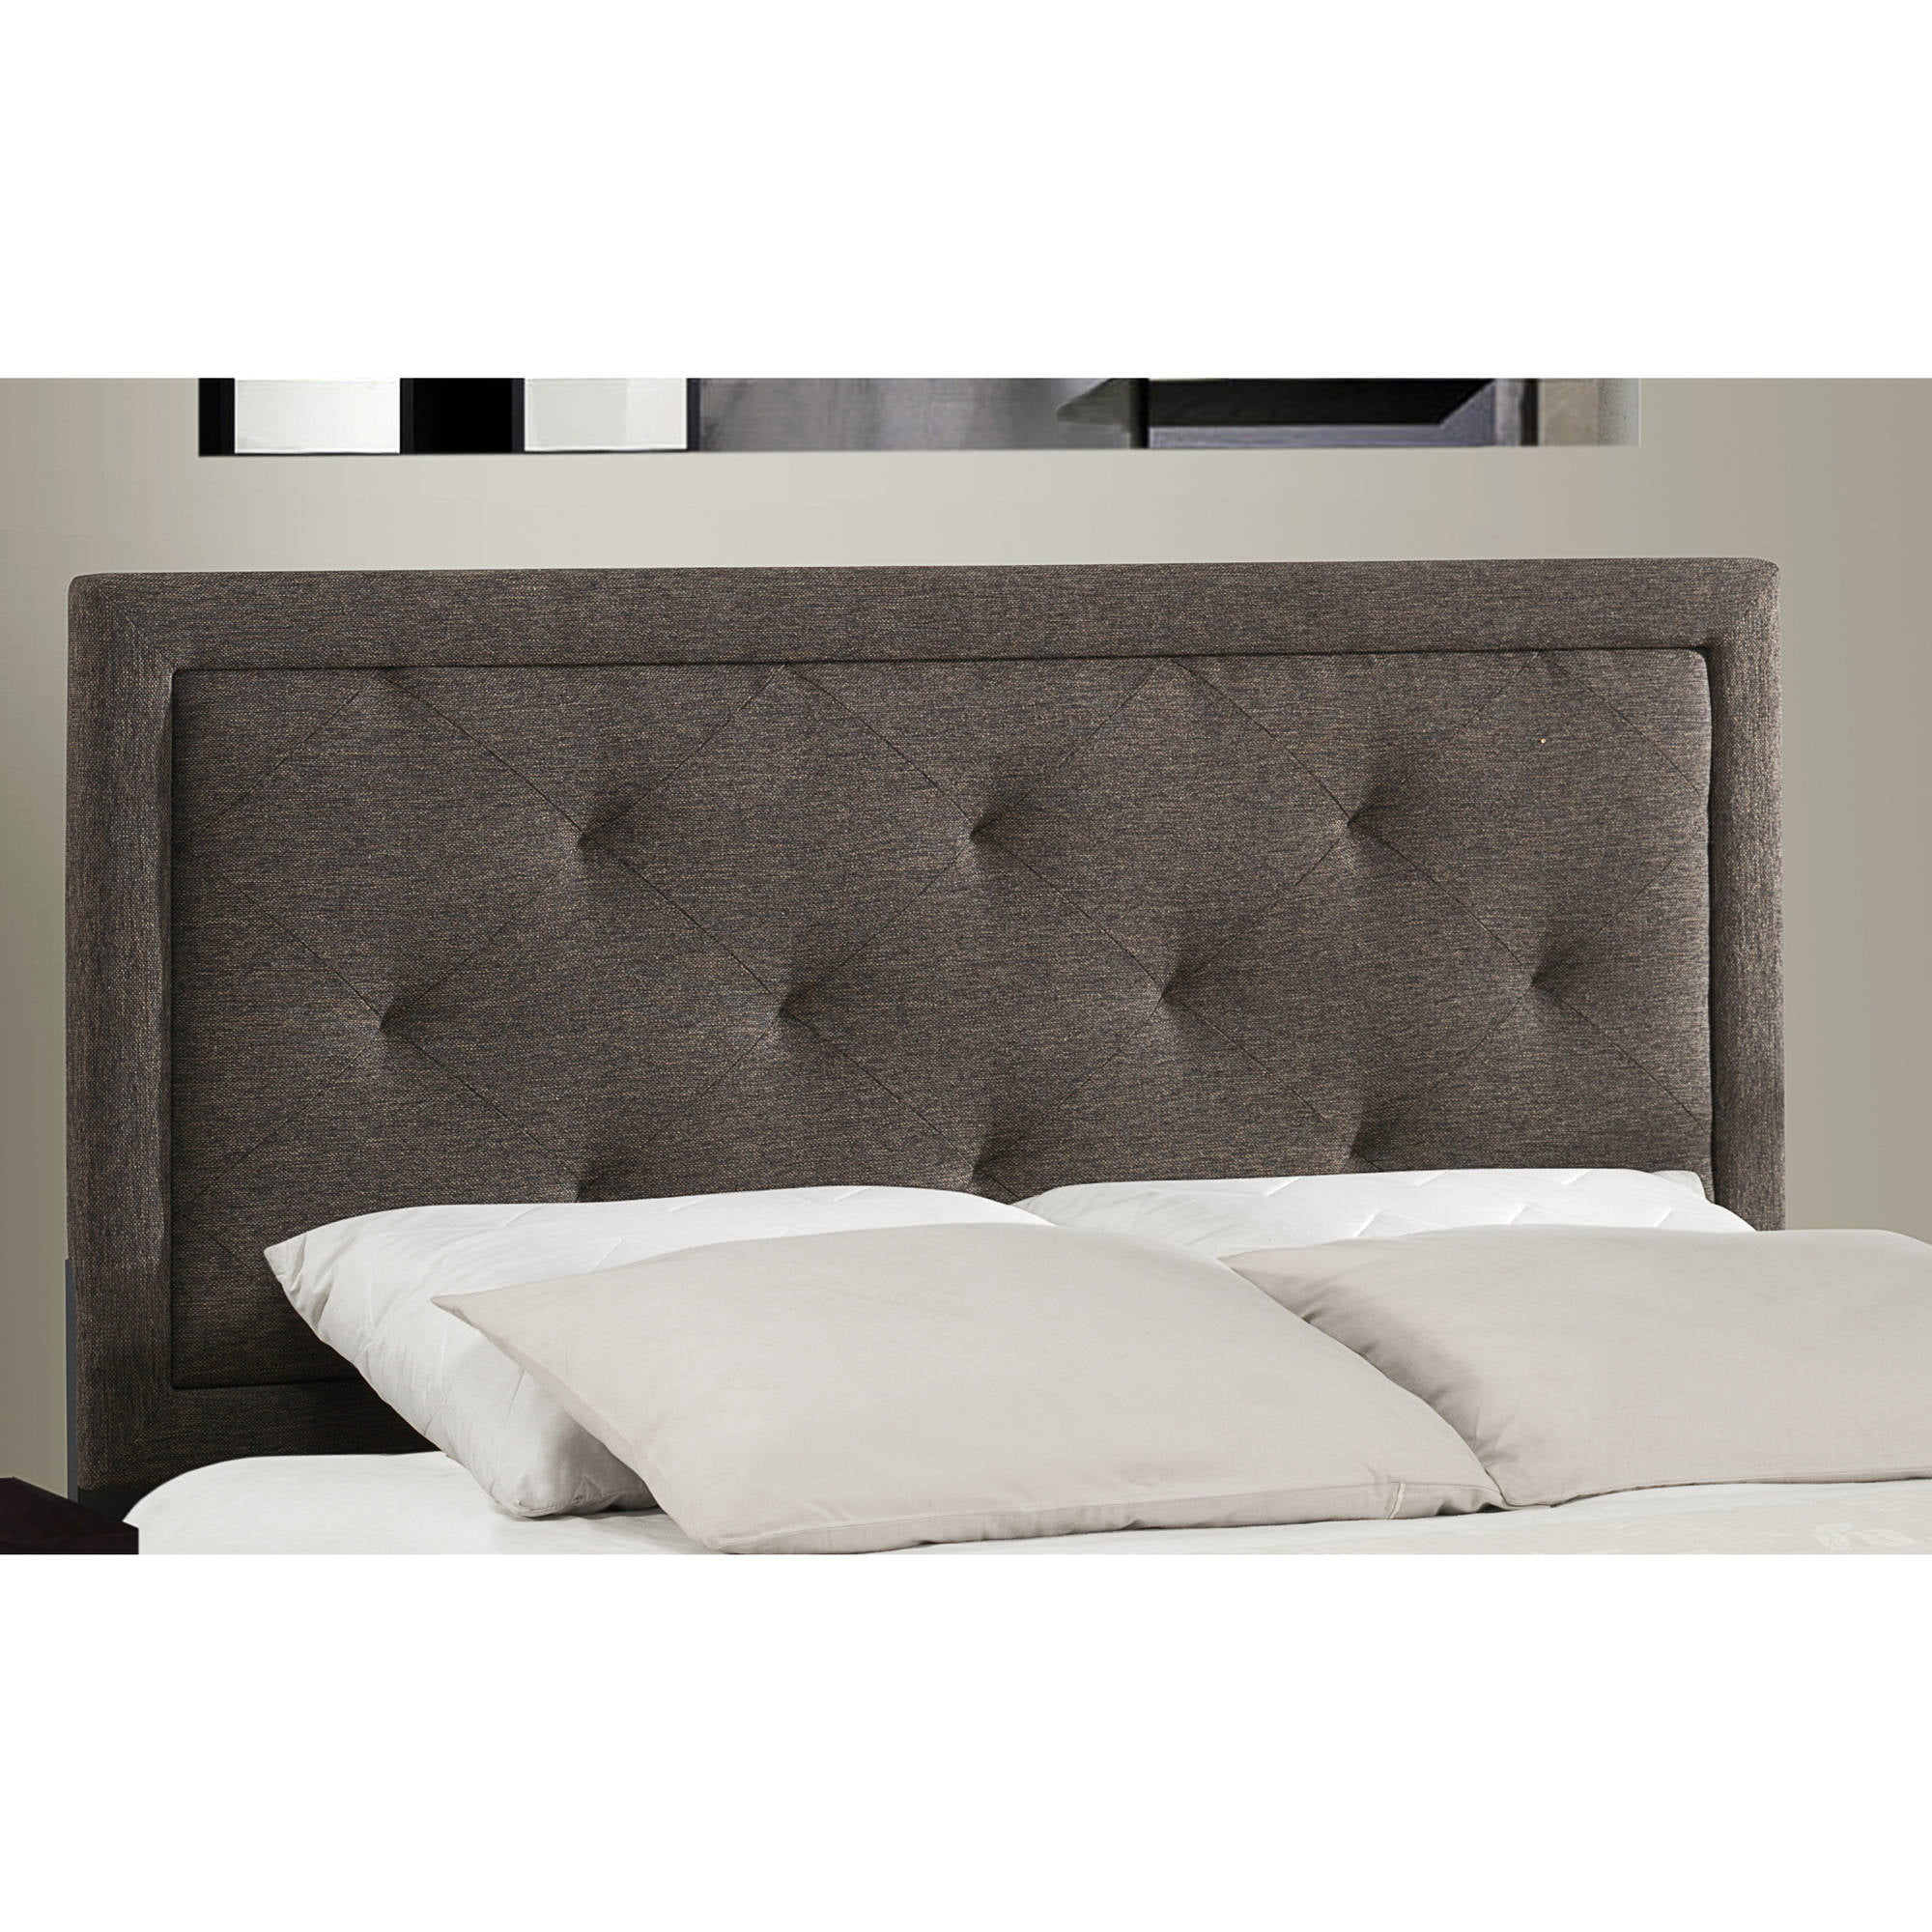 Hillsdale Furniture Becker Full Headboard with Bedframe, Black   Brown Fabric by Hillsdale